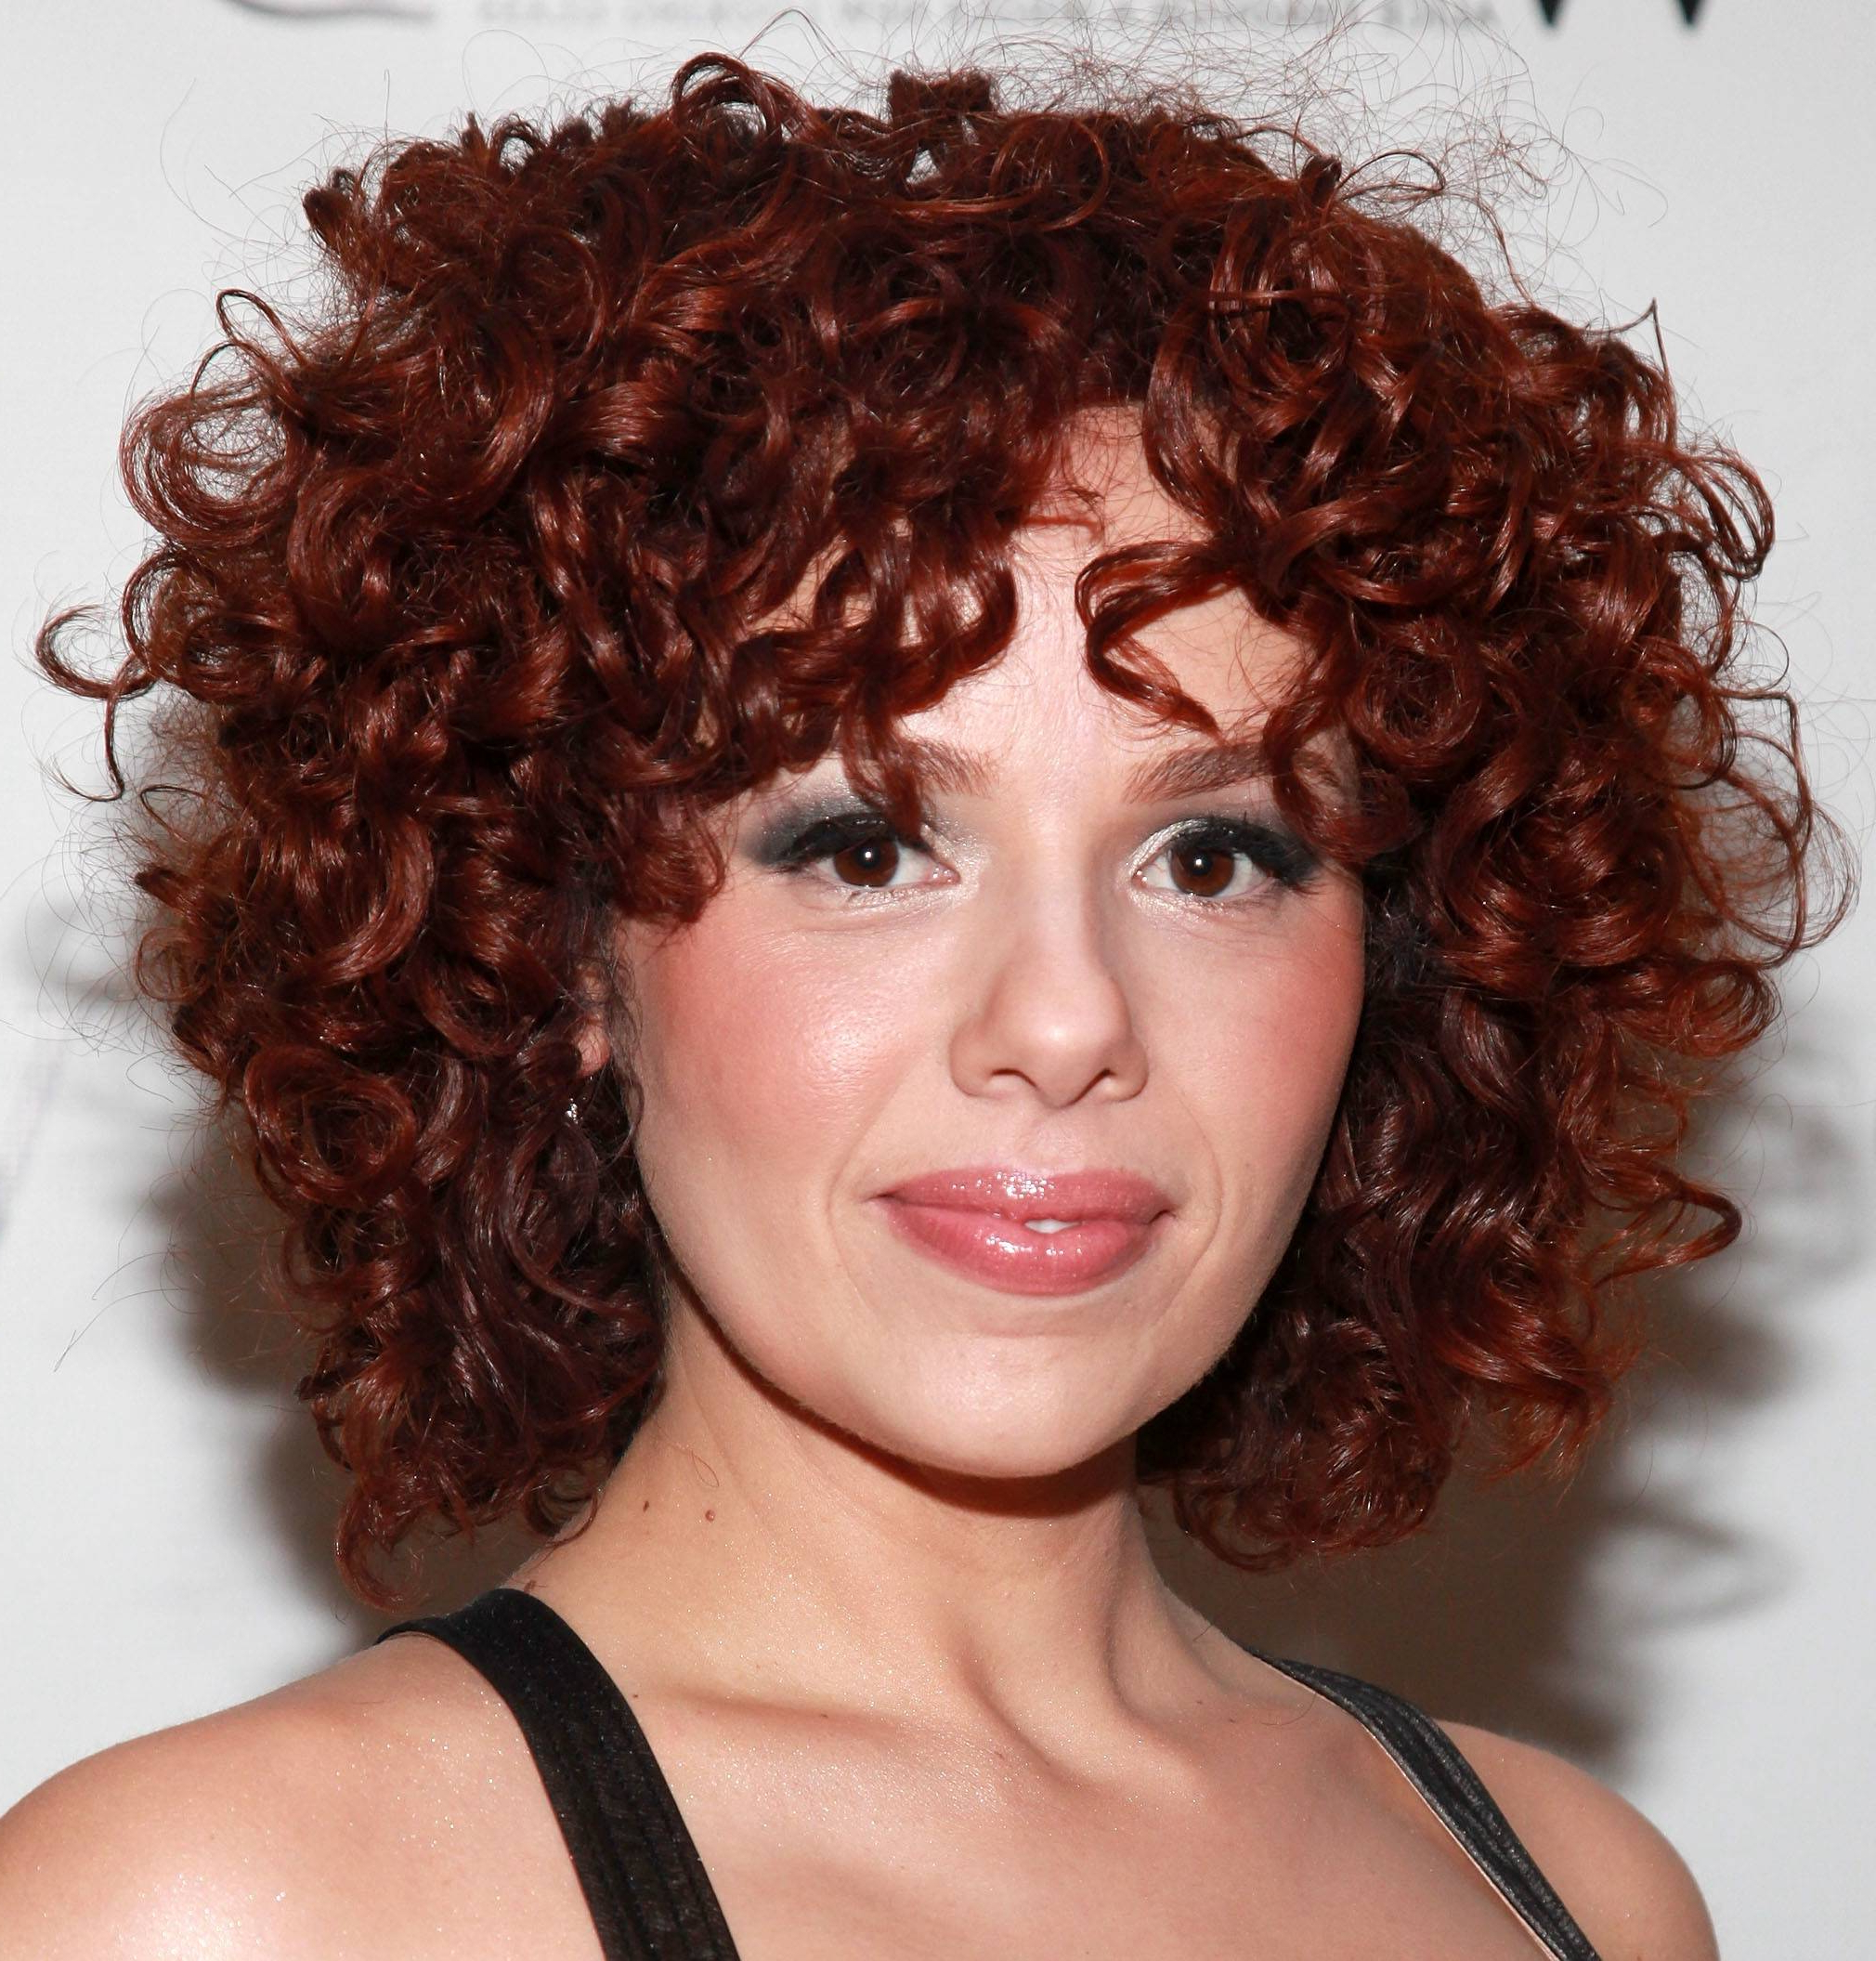 Hair Cuts : Short Naturally Curly Hairstyles For Oval Faces Haircuts For Well Known Curly Medium Hairstyles For Oval Faces (View 6 of 20)